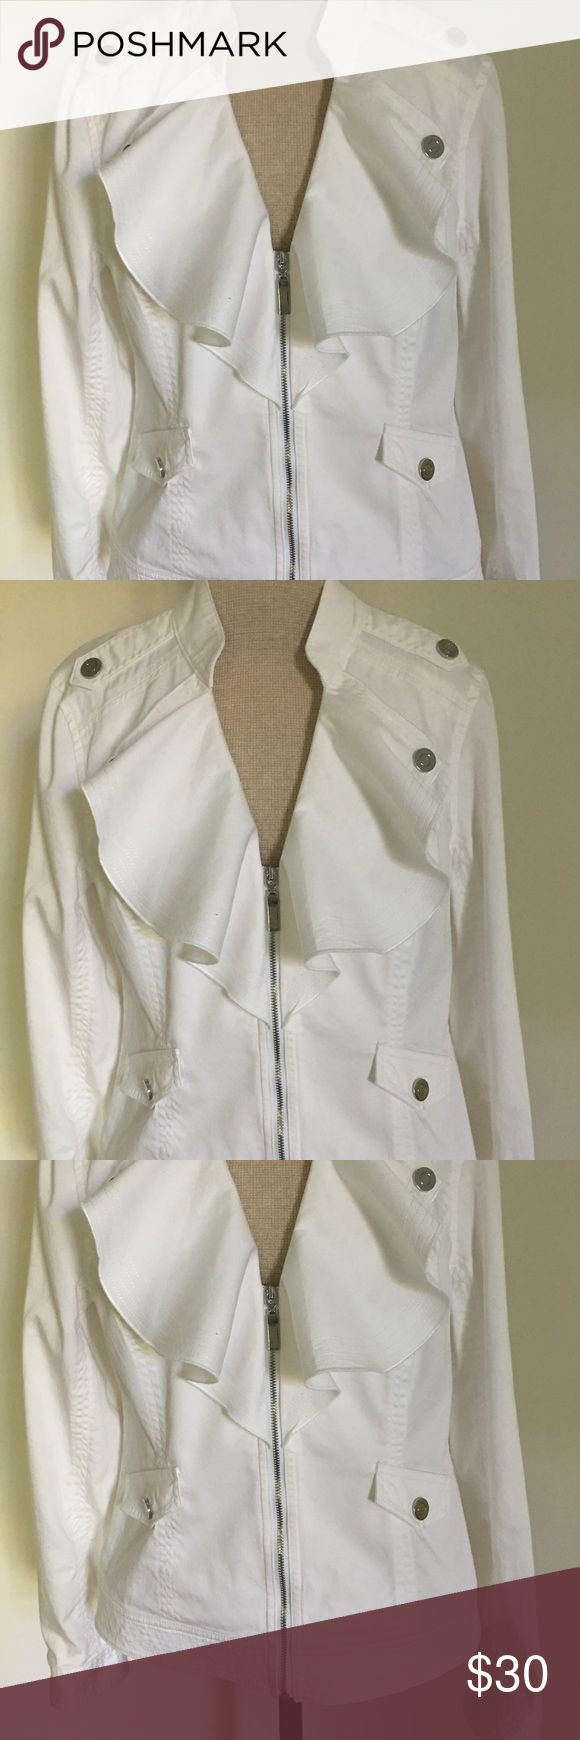 WHBM white denim jacket ruffle color. White House Black Market white denim jacket, front zip closure, ruffle collar with metal button snaps. 4 rows of stitching on collar, cuffs and band at bottom. Size 4 excellent condition. White House Black Market Jackets & Coats Jean Jackets